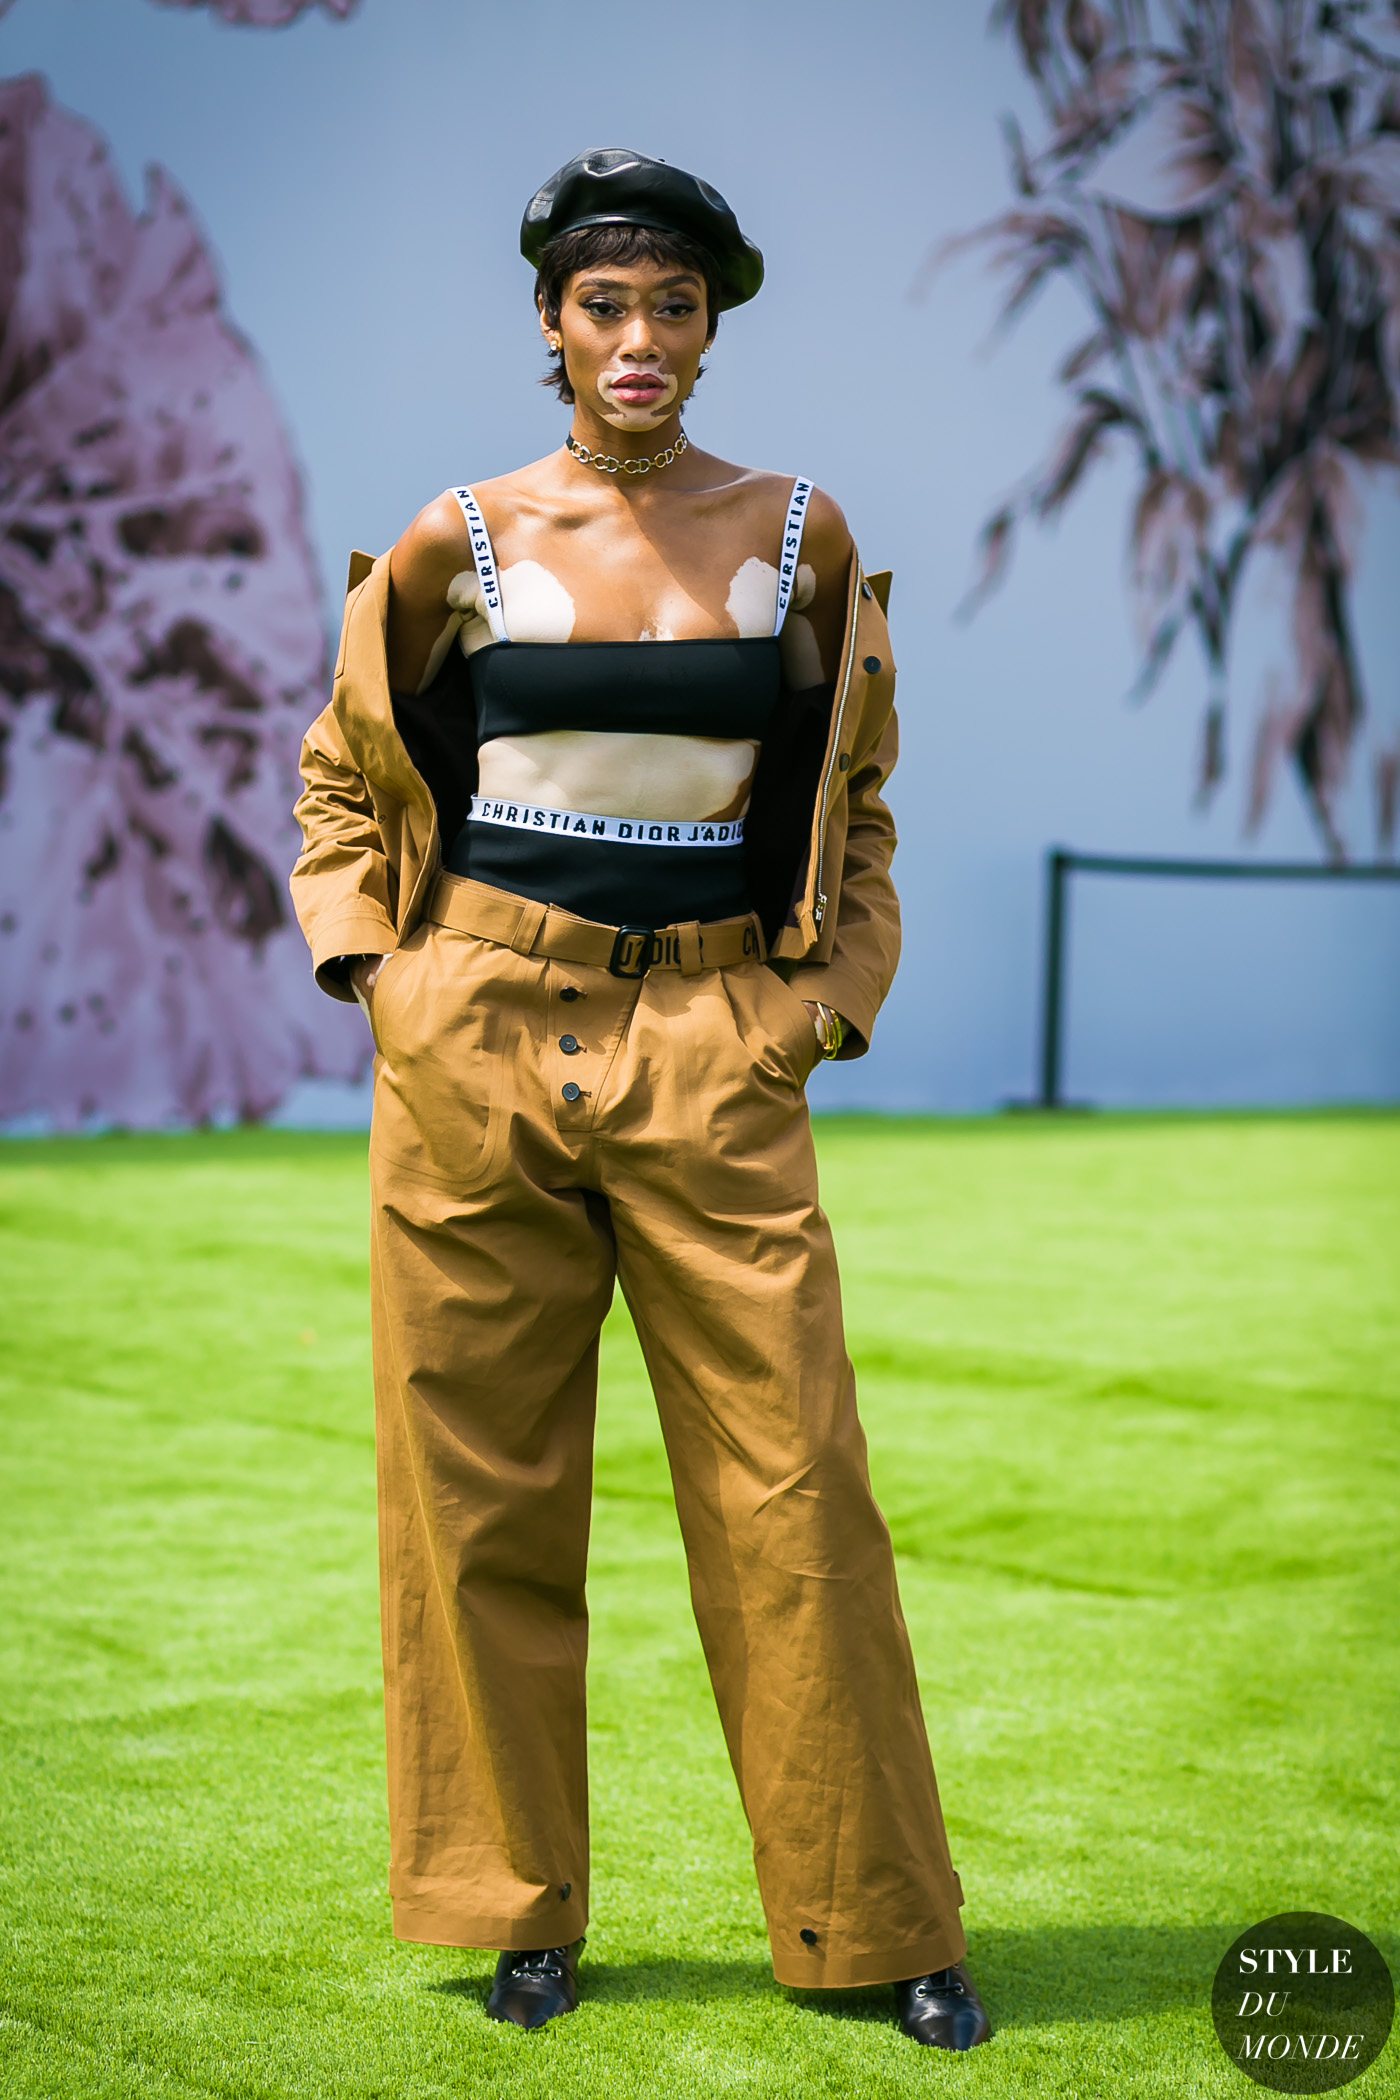 Winnie Harlow by STYLEDUMONDE Street Style Fashion Photography0E2A6216